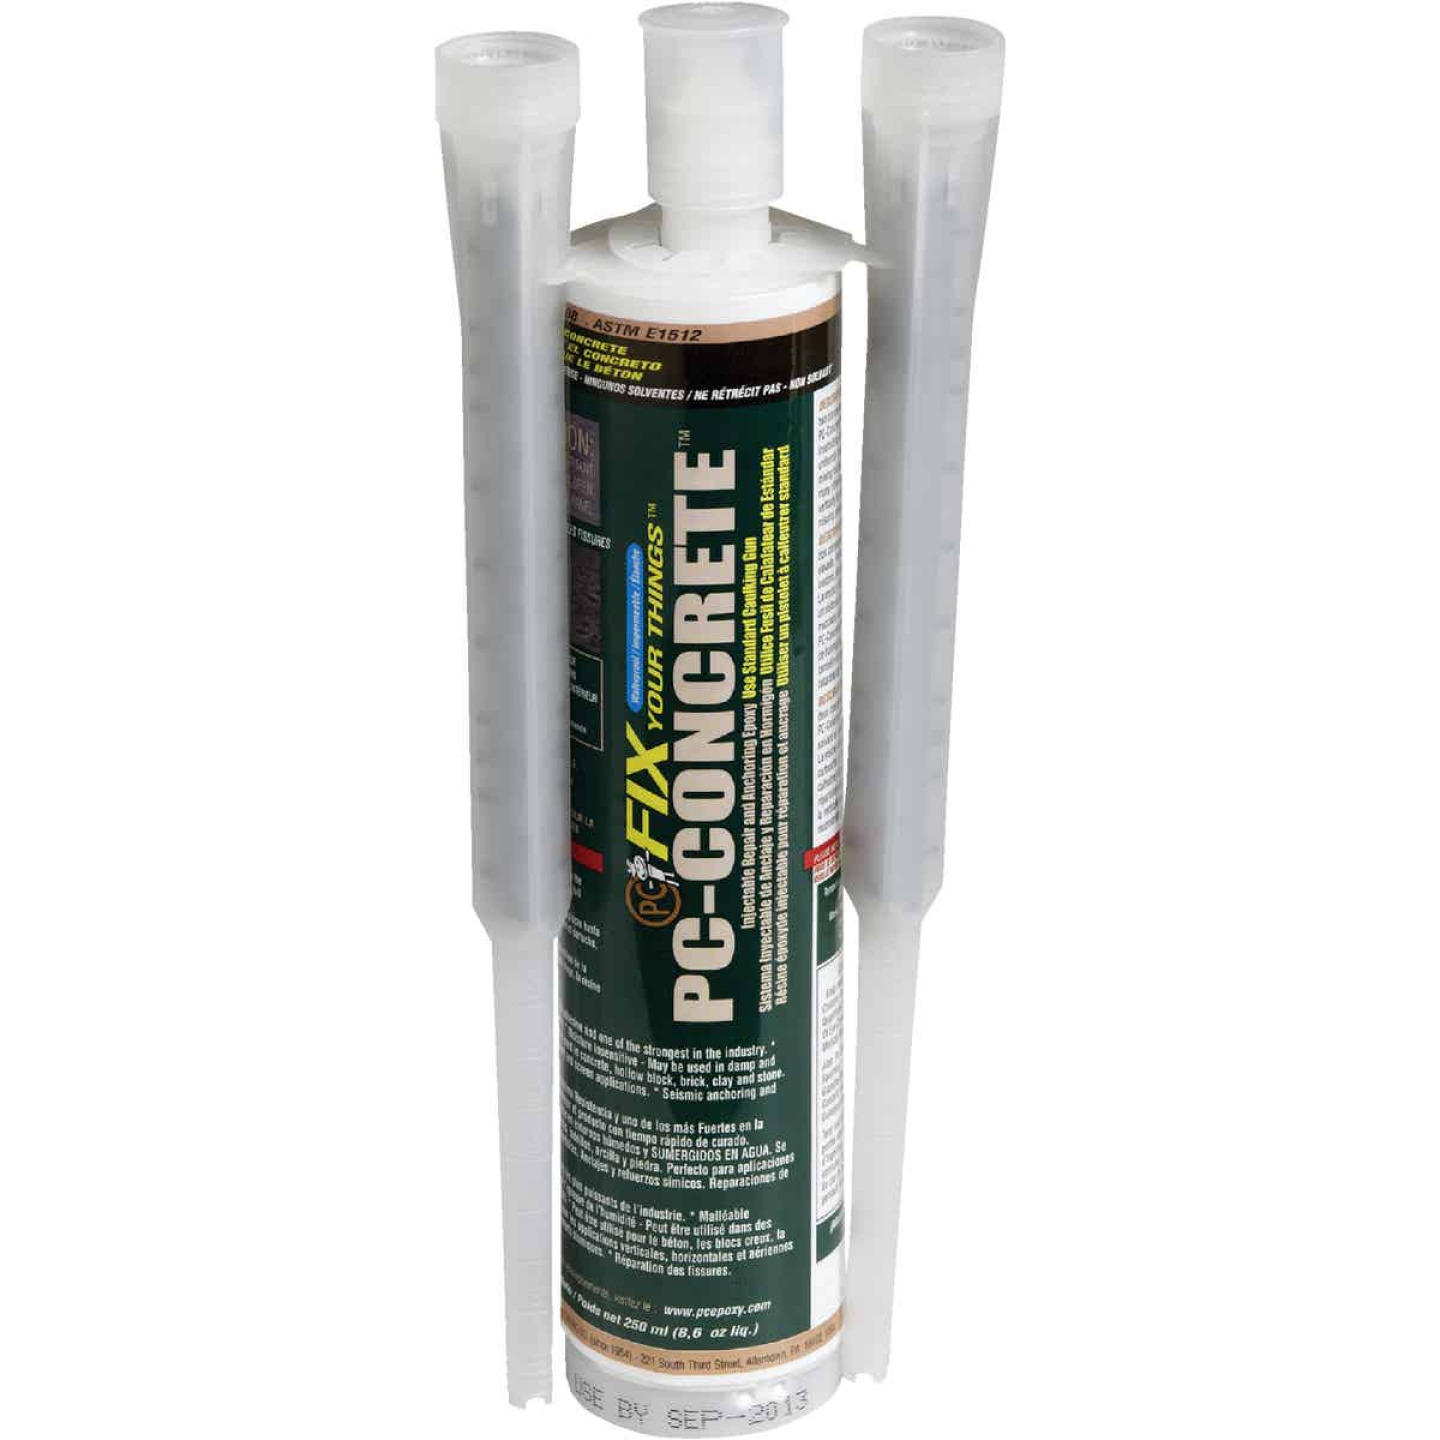 PC Concrete 8.6 Oz. Repair Epoxy Image 1